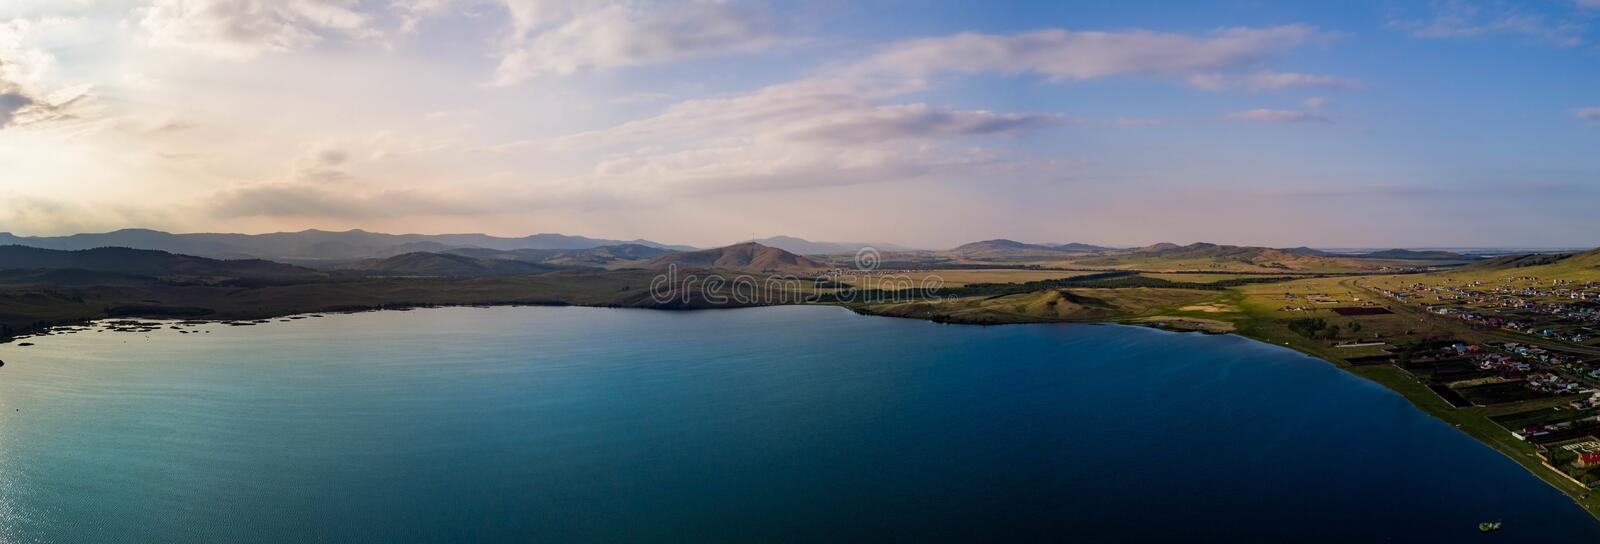 Panoramic view from drone of the lake near the mountains royalty free stock images